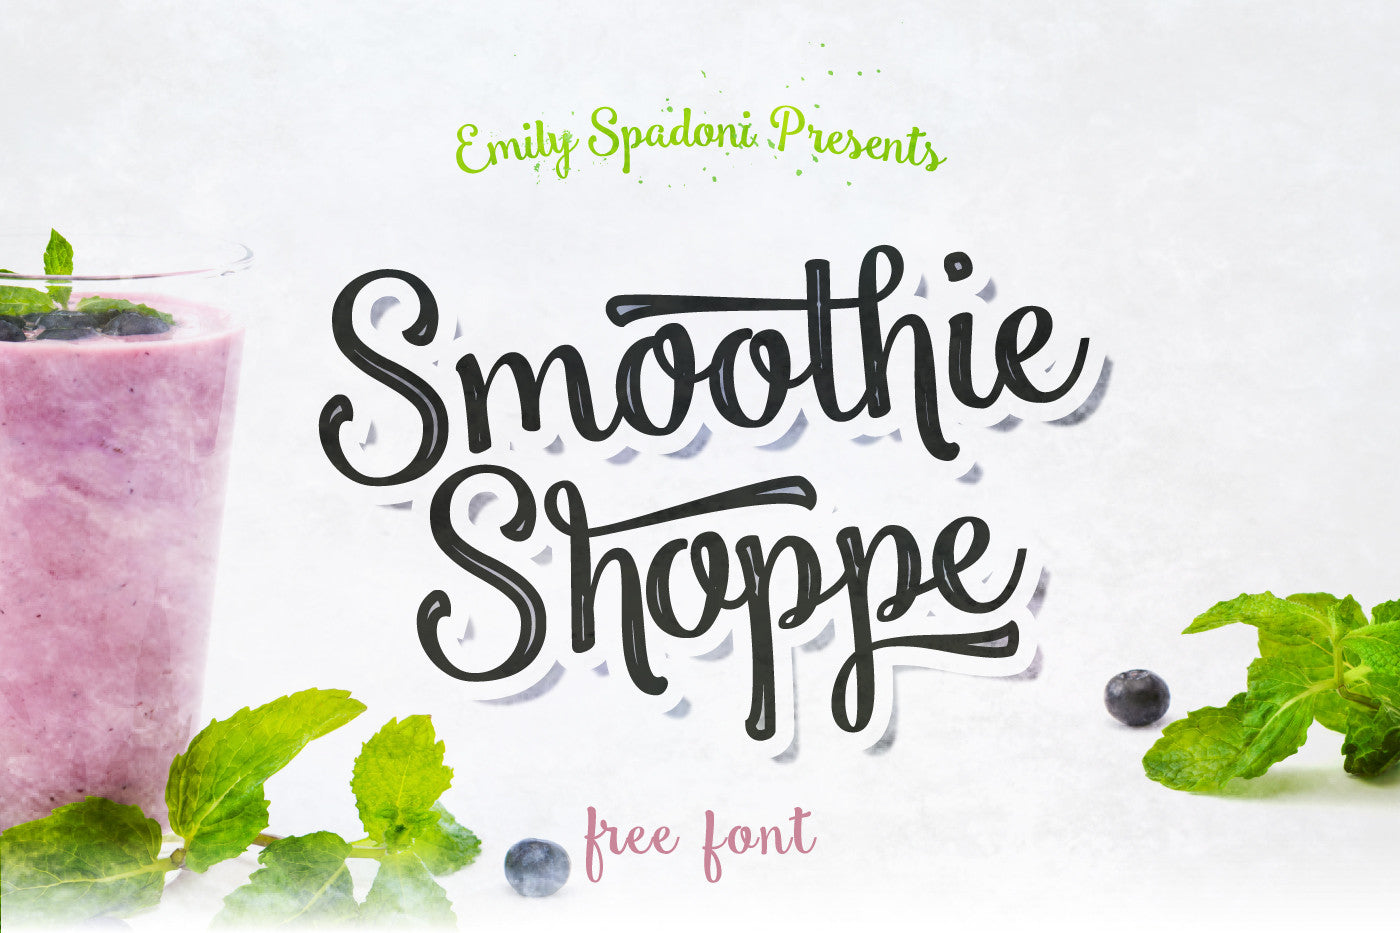 Smoothie shoppe free script font preview 01